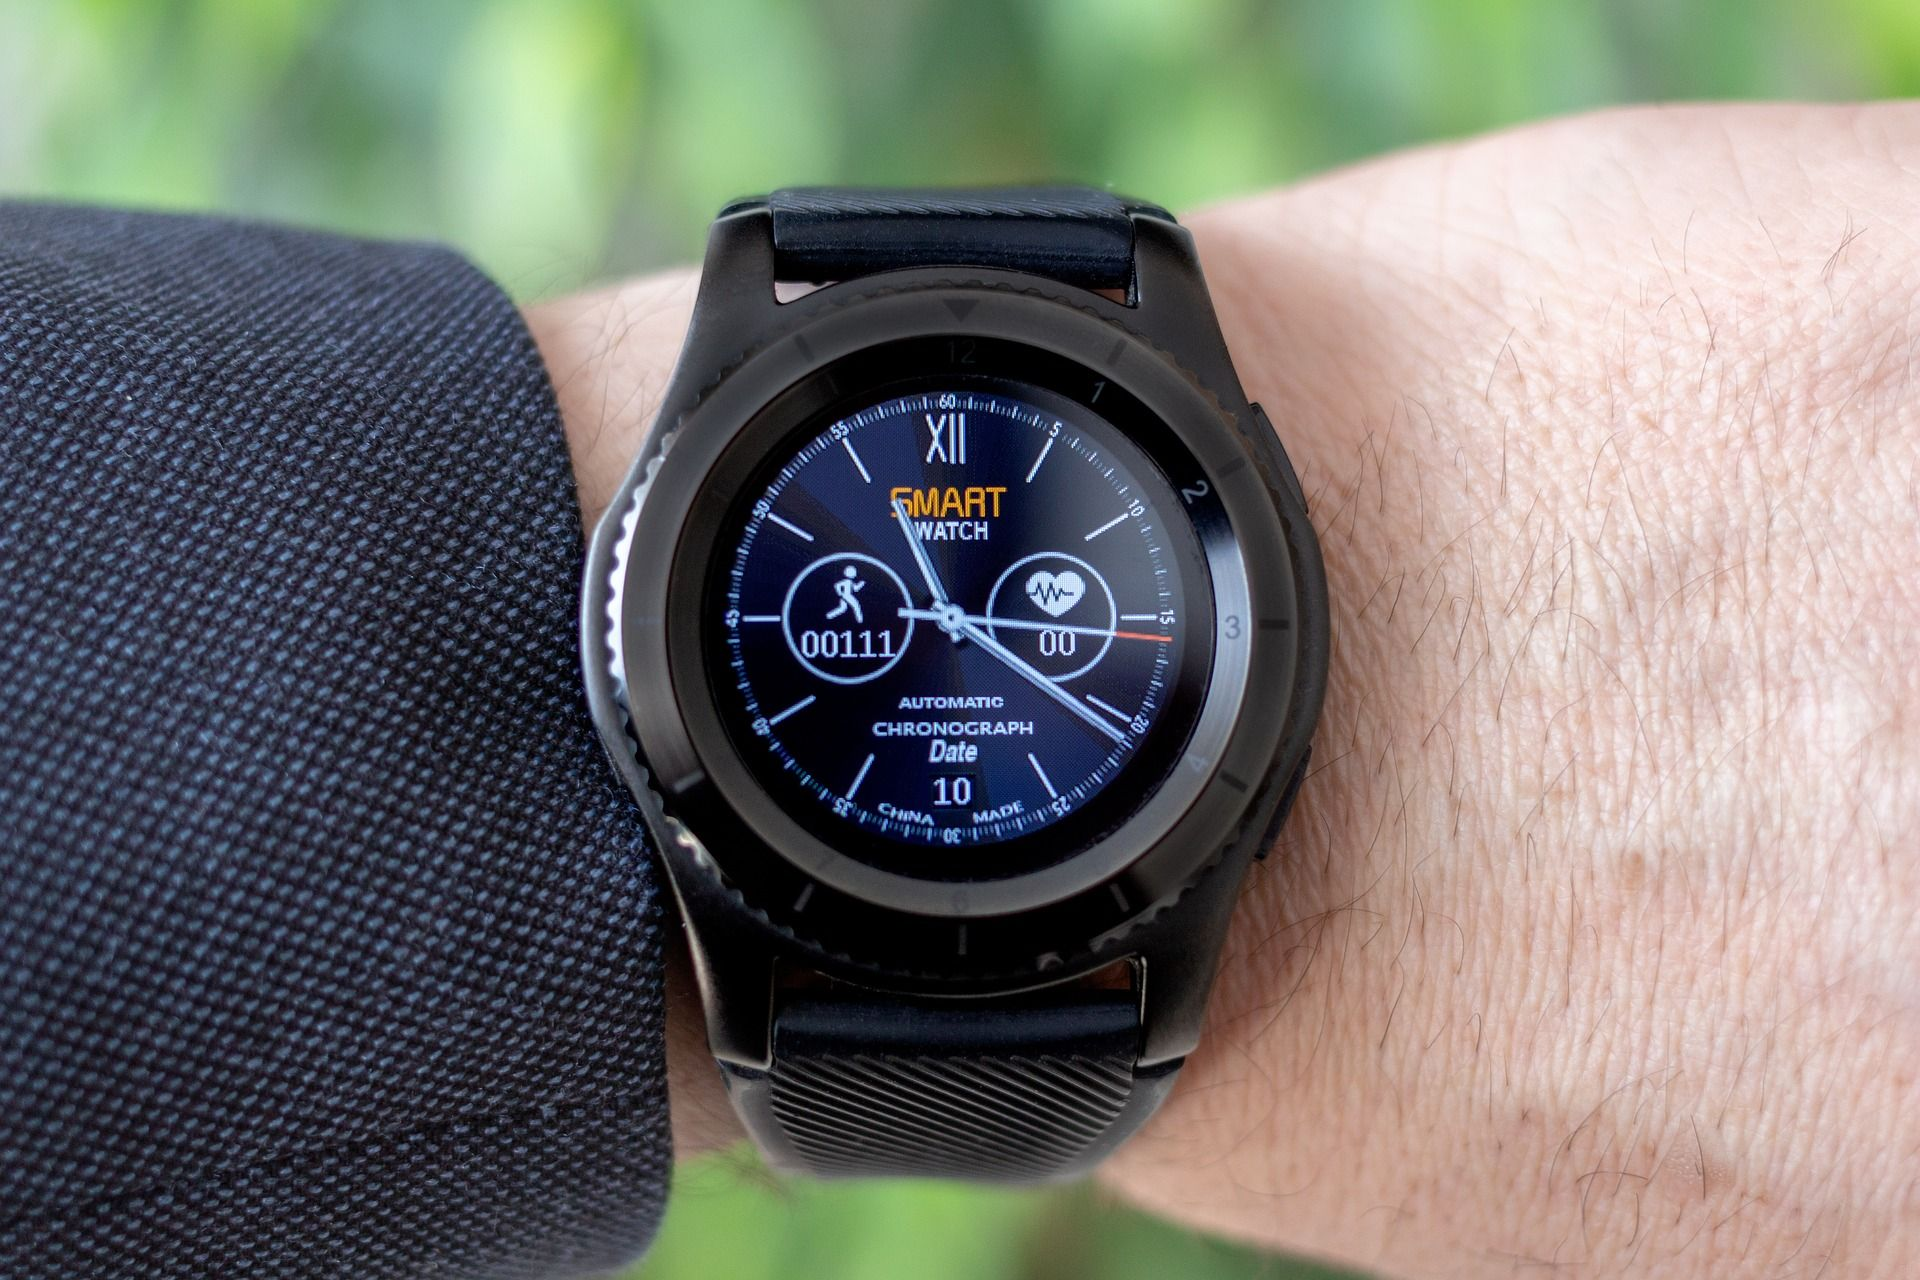 A smart watch that shows heart rate and how many steps the wearer has walked.